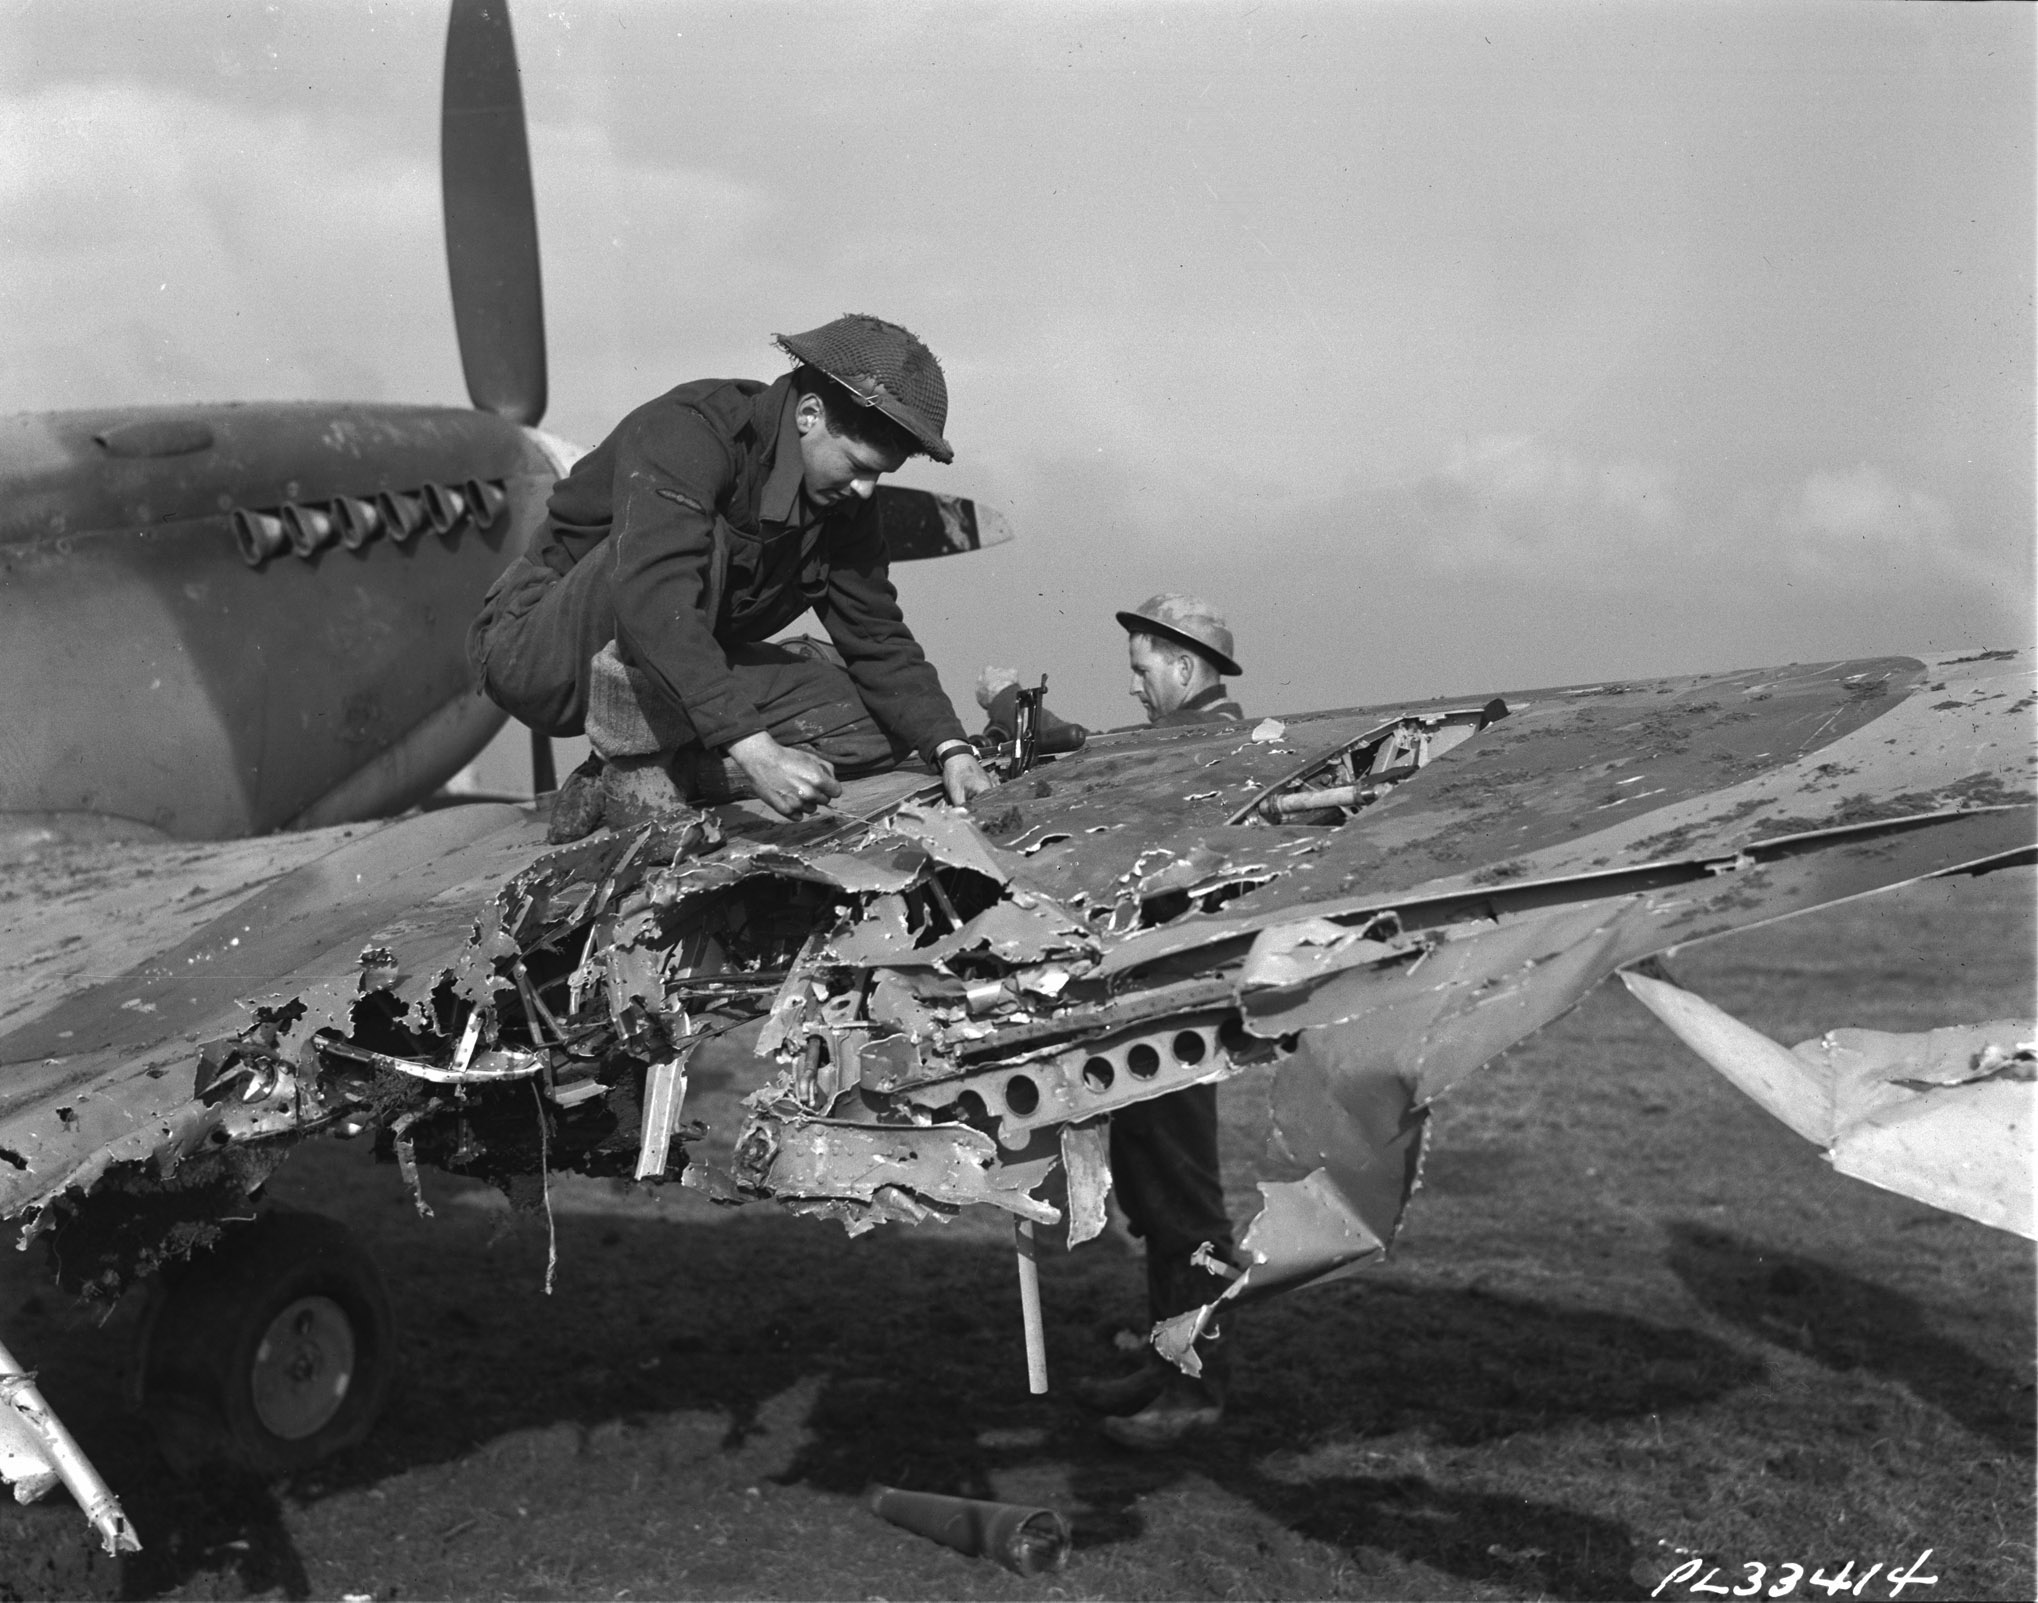 A man kneels on the damaged wing of a small aircraft